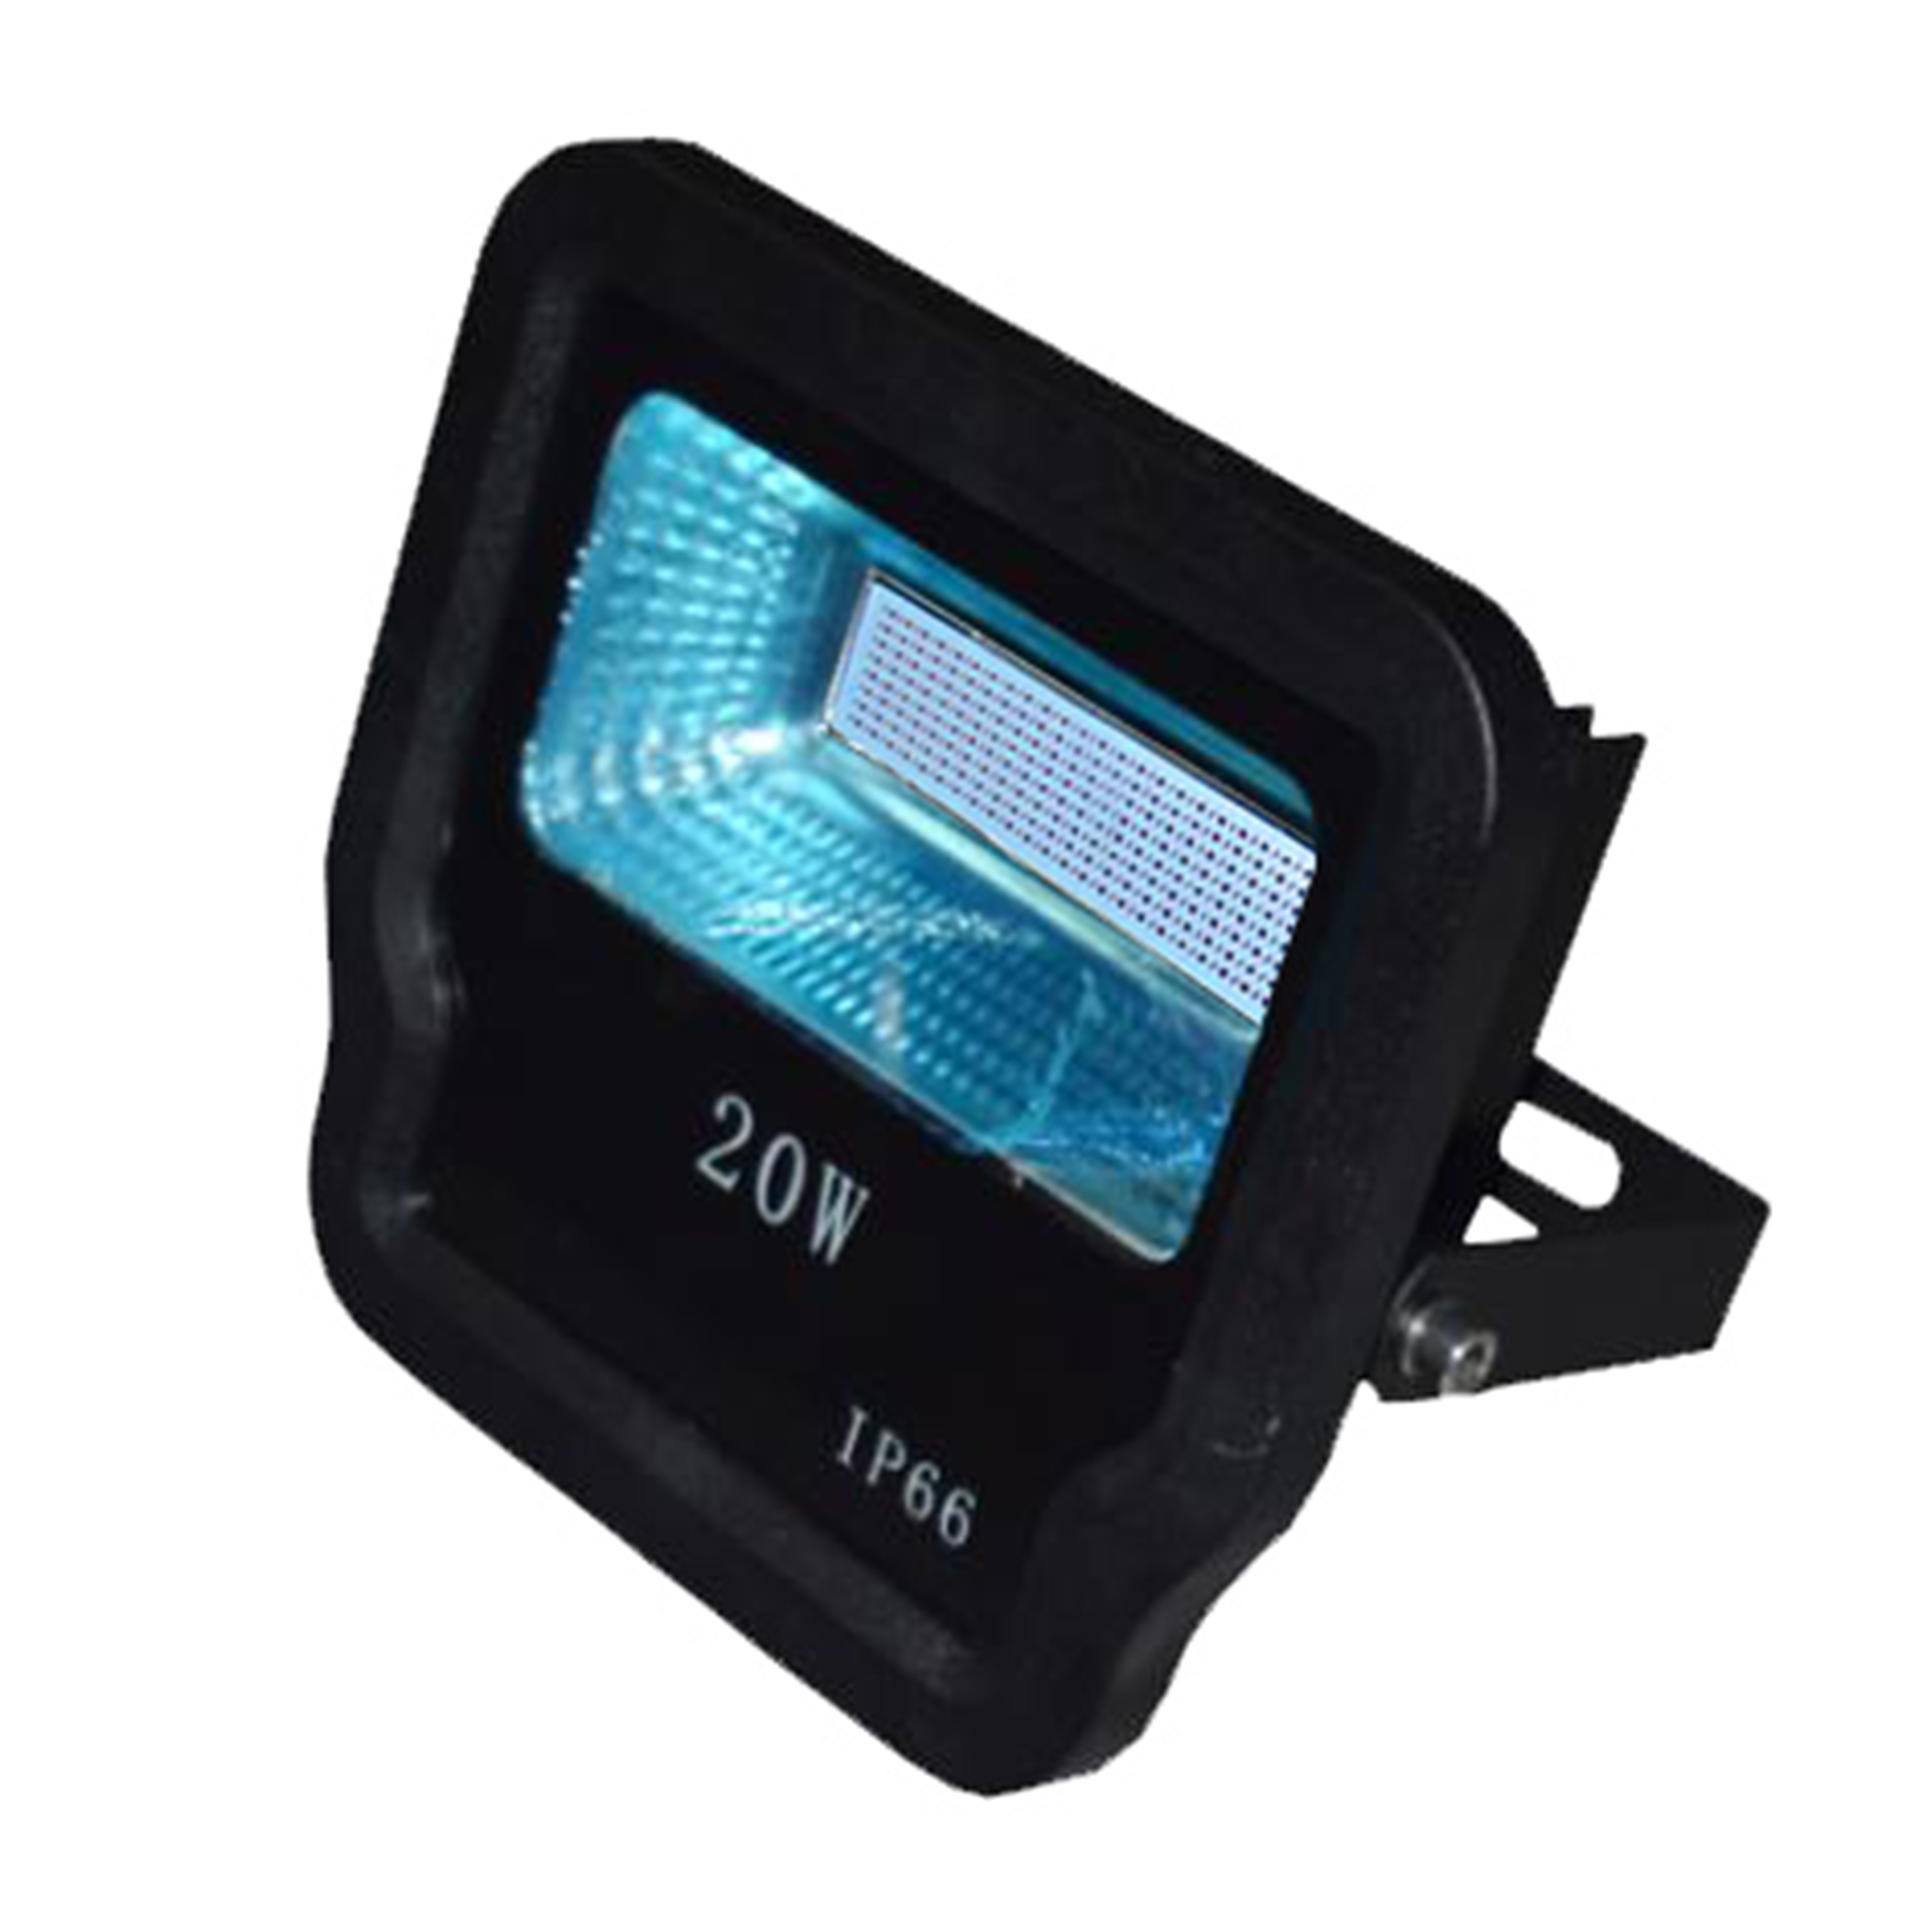 LED Flood light SMD 20W-150W 3 years warranty 120° Beam IP66 waterproof